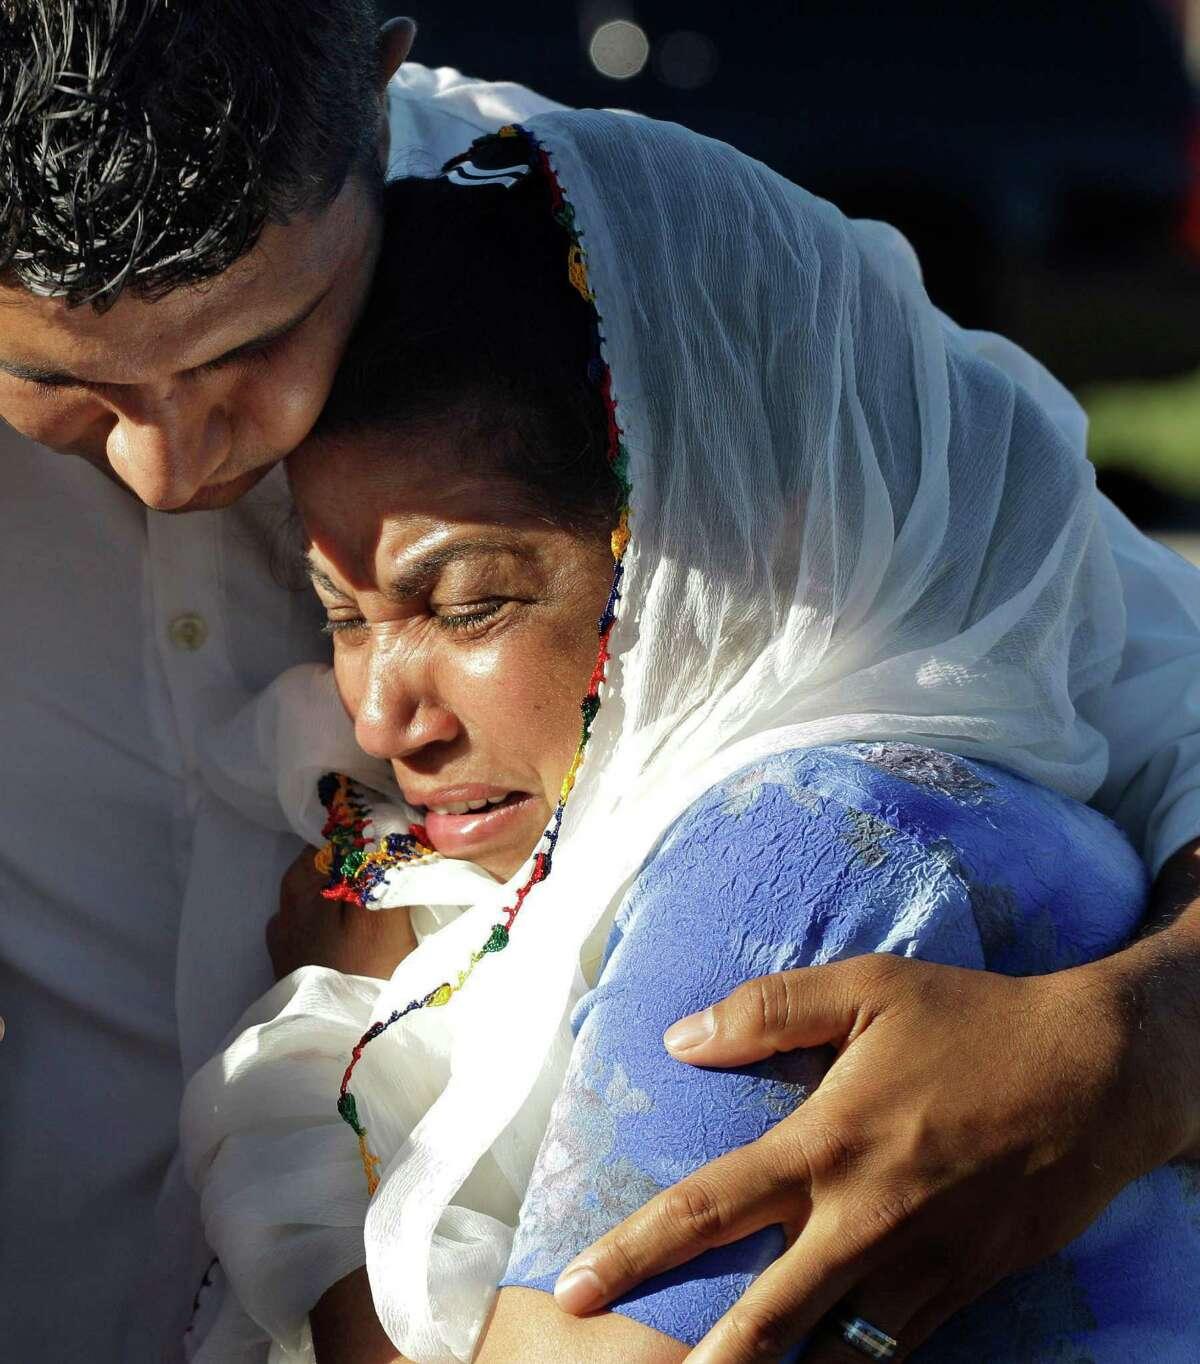 Amardeep Kaleka, son of the president of the Sikh Temple of Wisconsin, left, comforts members of the temple, Monday, Aug. 6, 2012, in Oak Creek, Wis., where a gunman killed six people a day earlier, before being shot and killed himself by police. Satwant Kaleka, 65, founder and president of the temple, died in the shooting. He was among four priests who died.